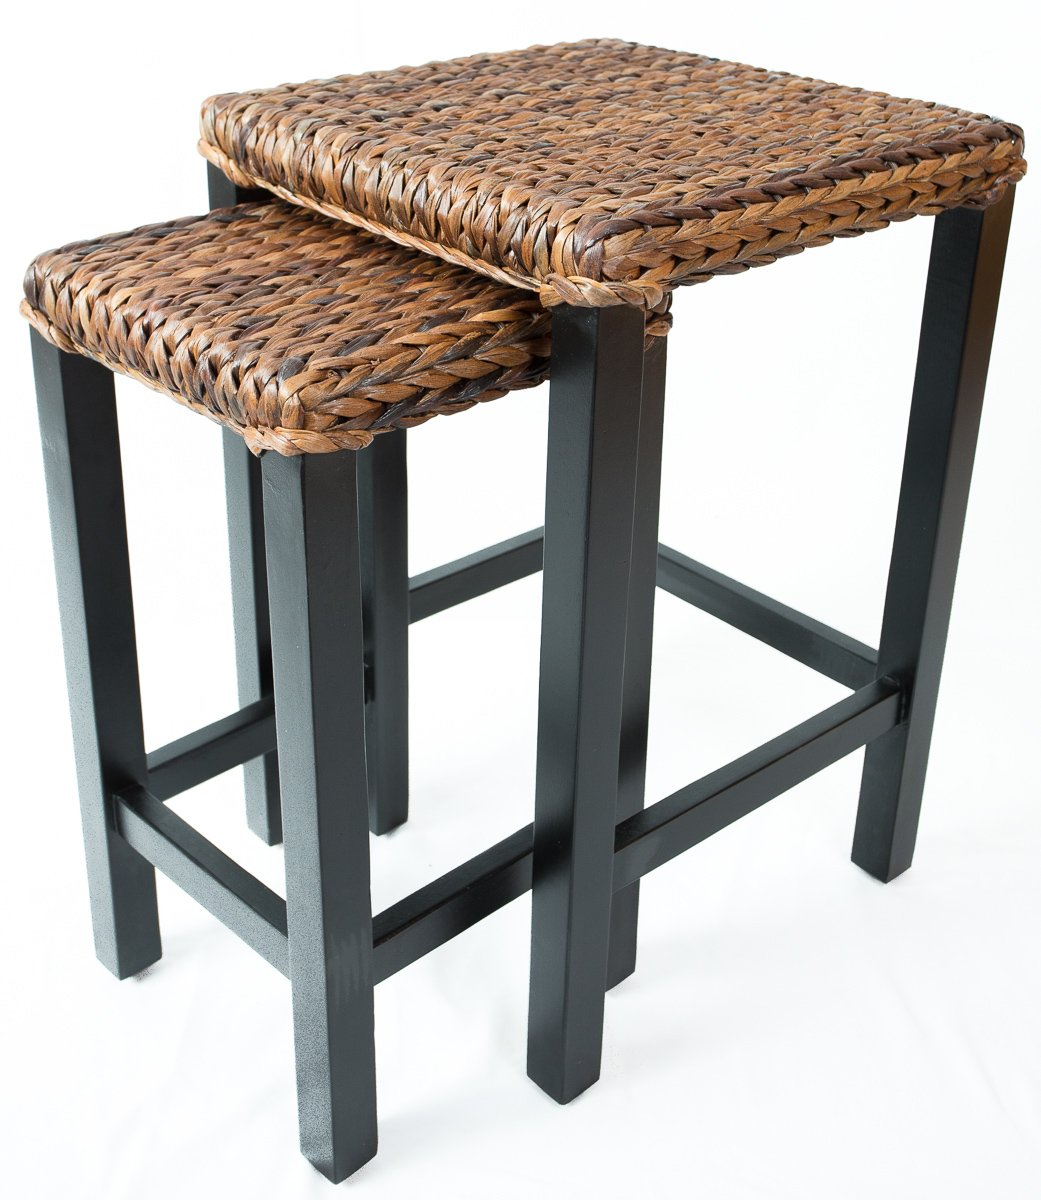 birdrock home seagrass nesting accent tables hand antique small woven fully assembled kitchen dining wood end table with glass top ashley furniture retro cabinet foyer console